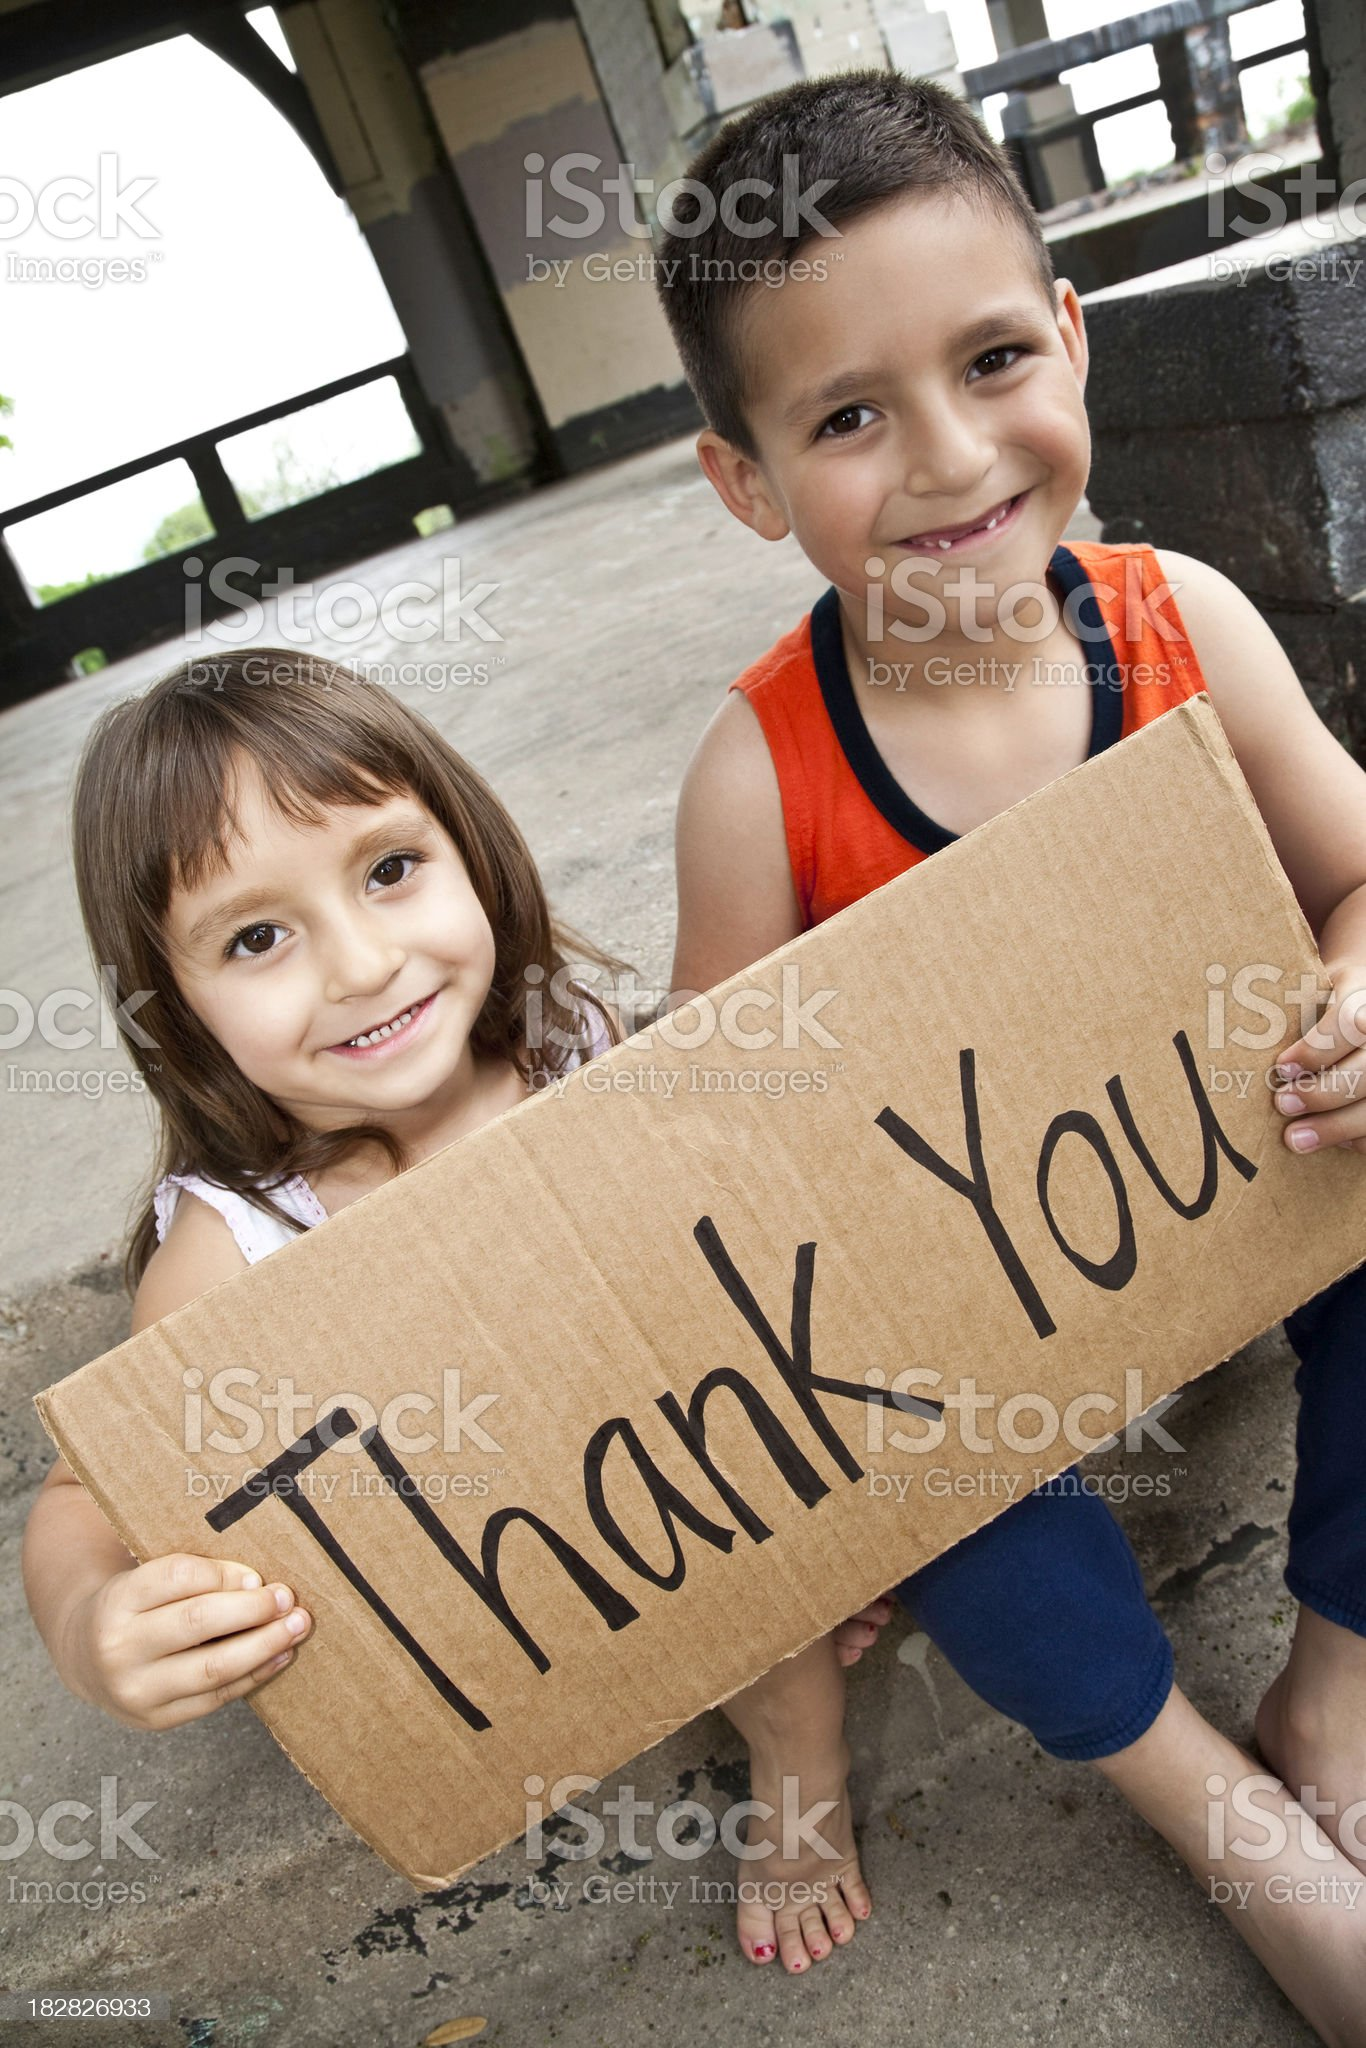 Thank You Sign Held By Cute Hispanic Children royalty-free stock photo